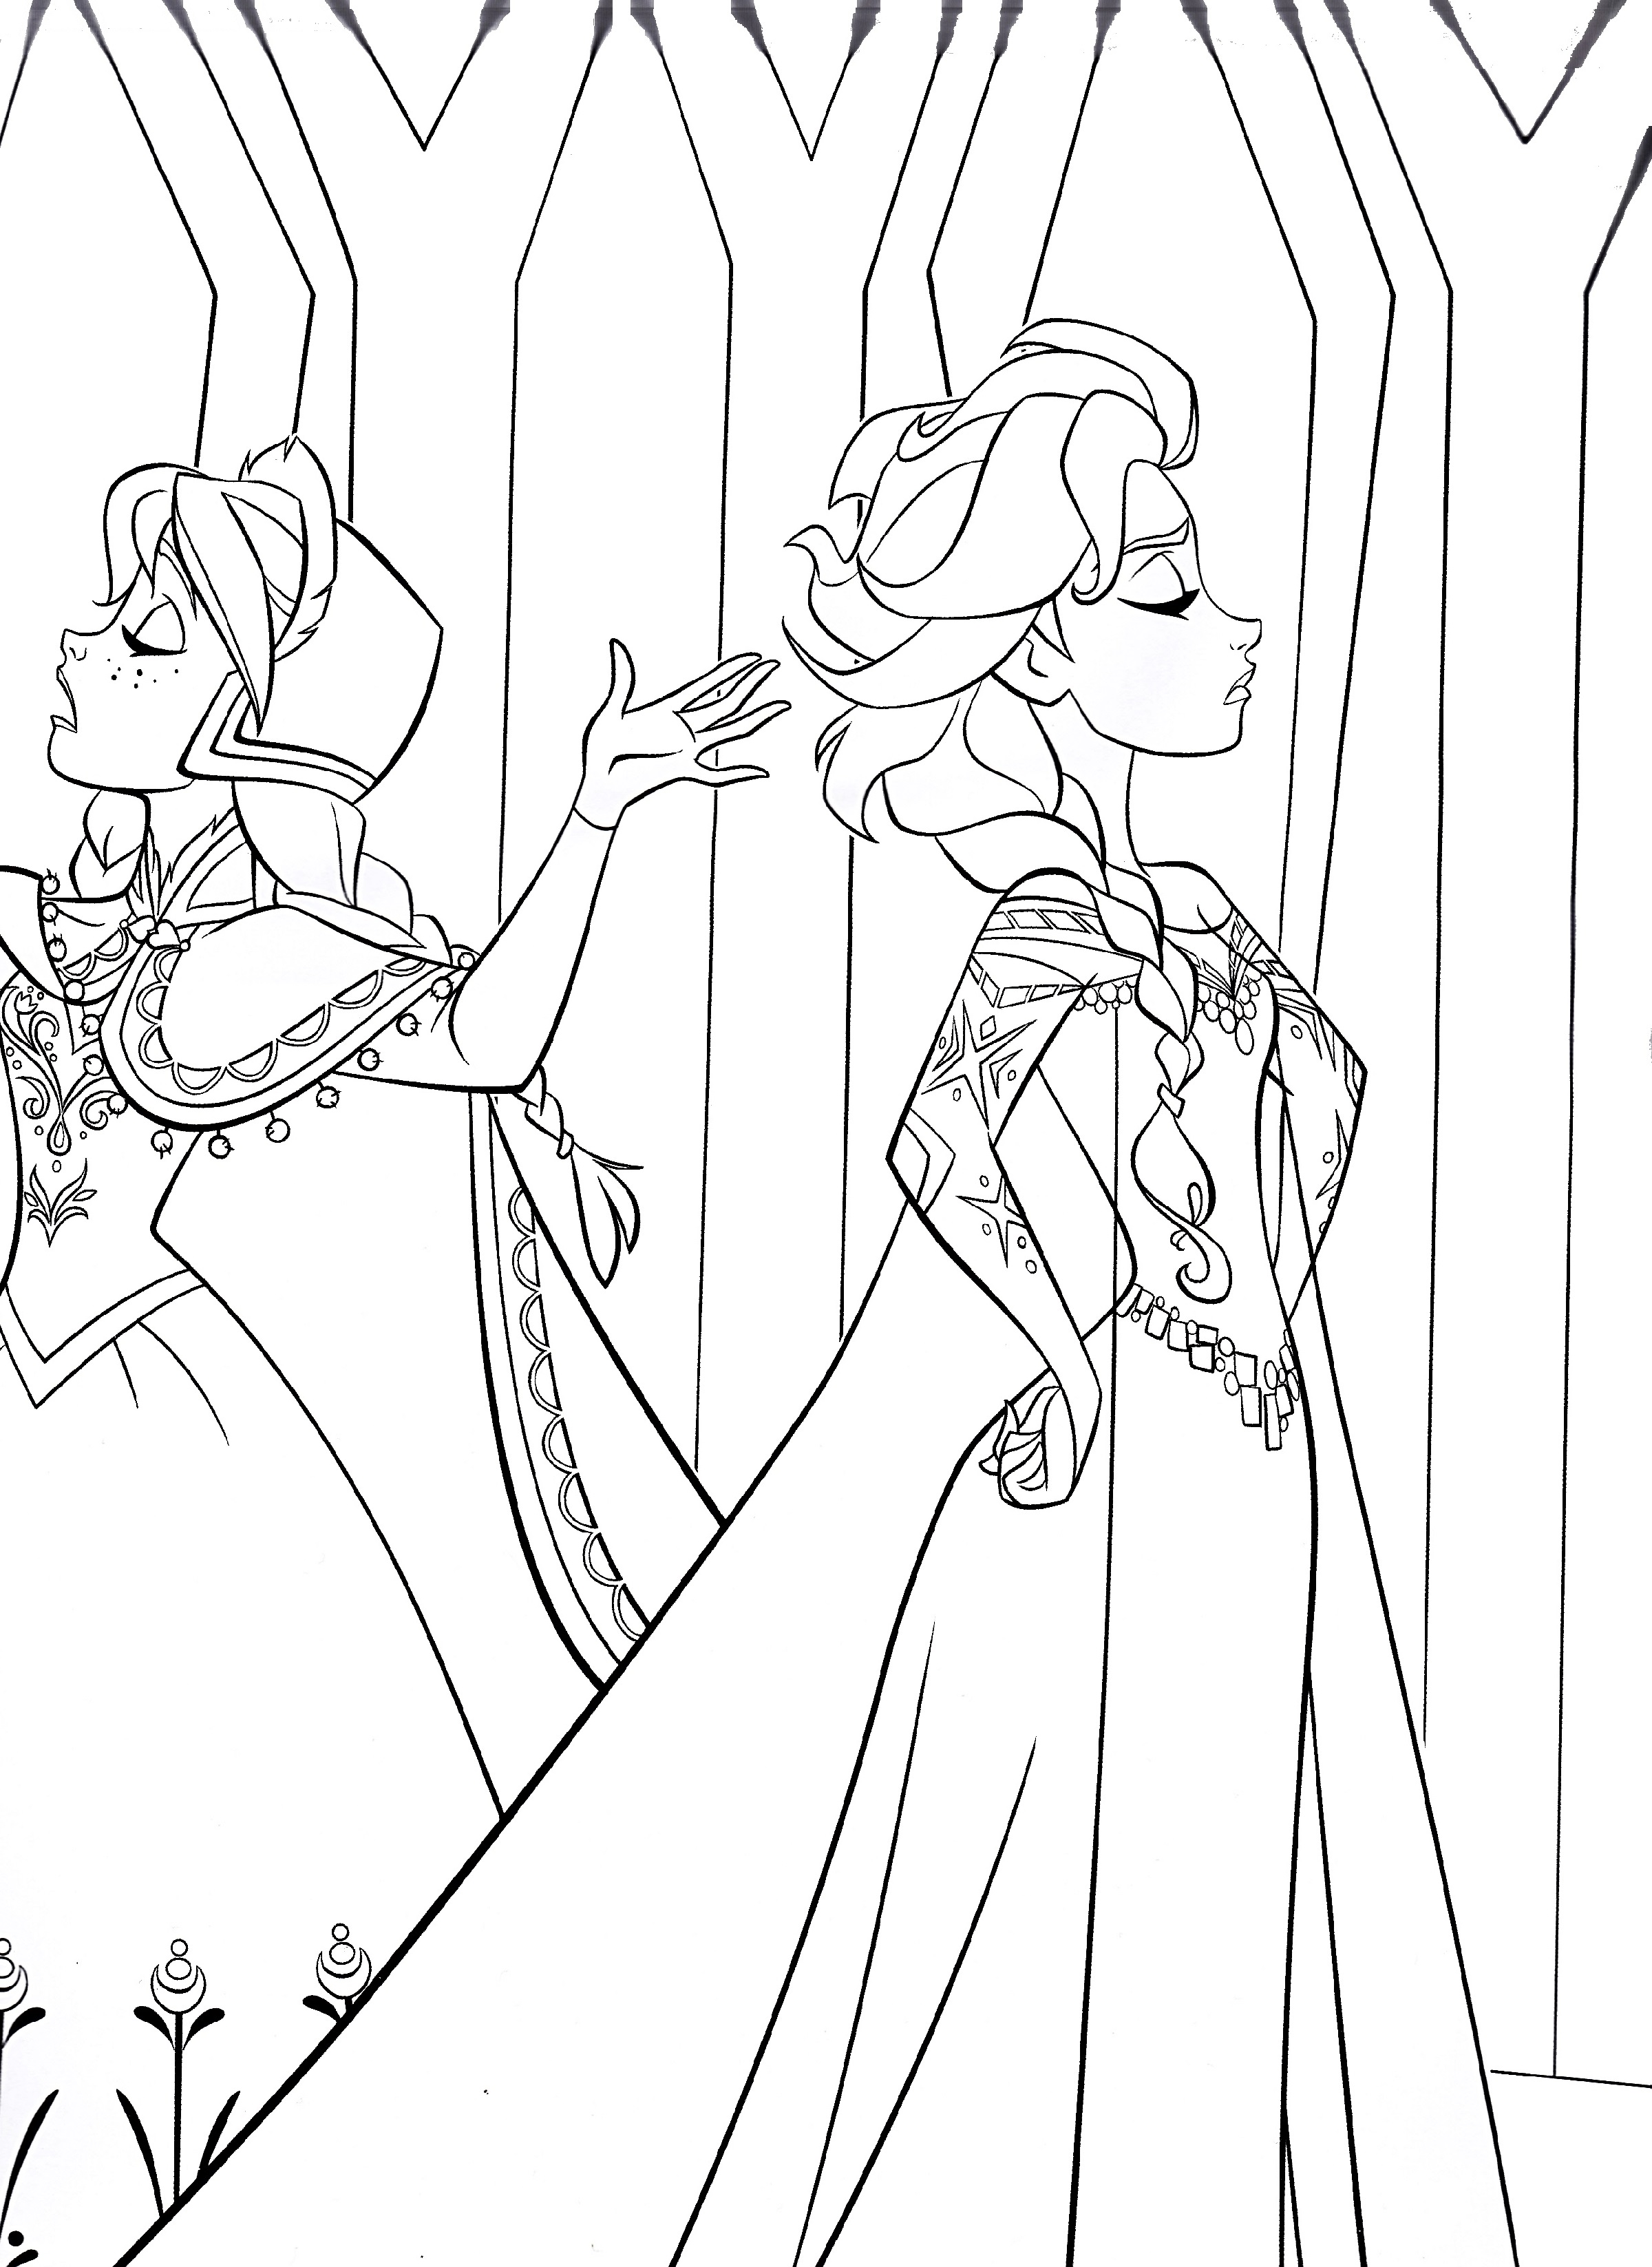 Beautiful Elsa Coloring Pages to Print | 101 Coloring